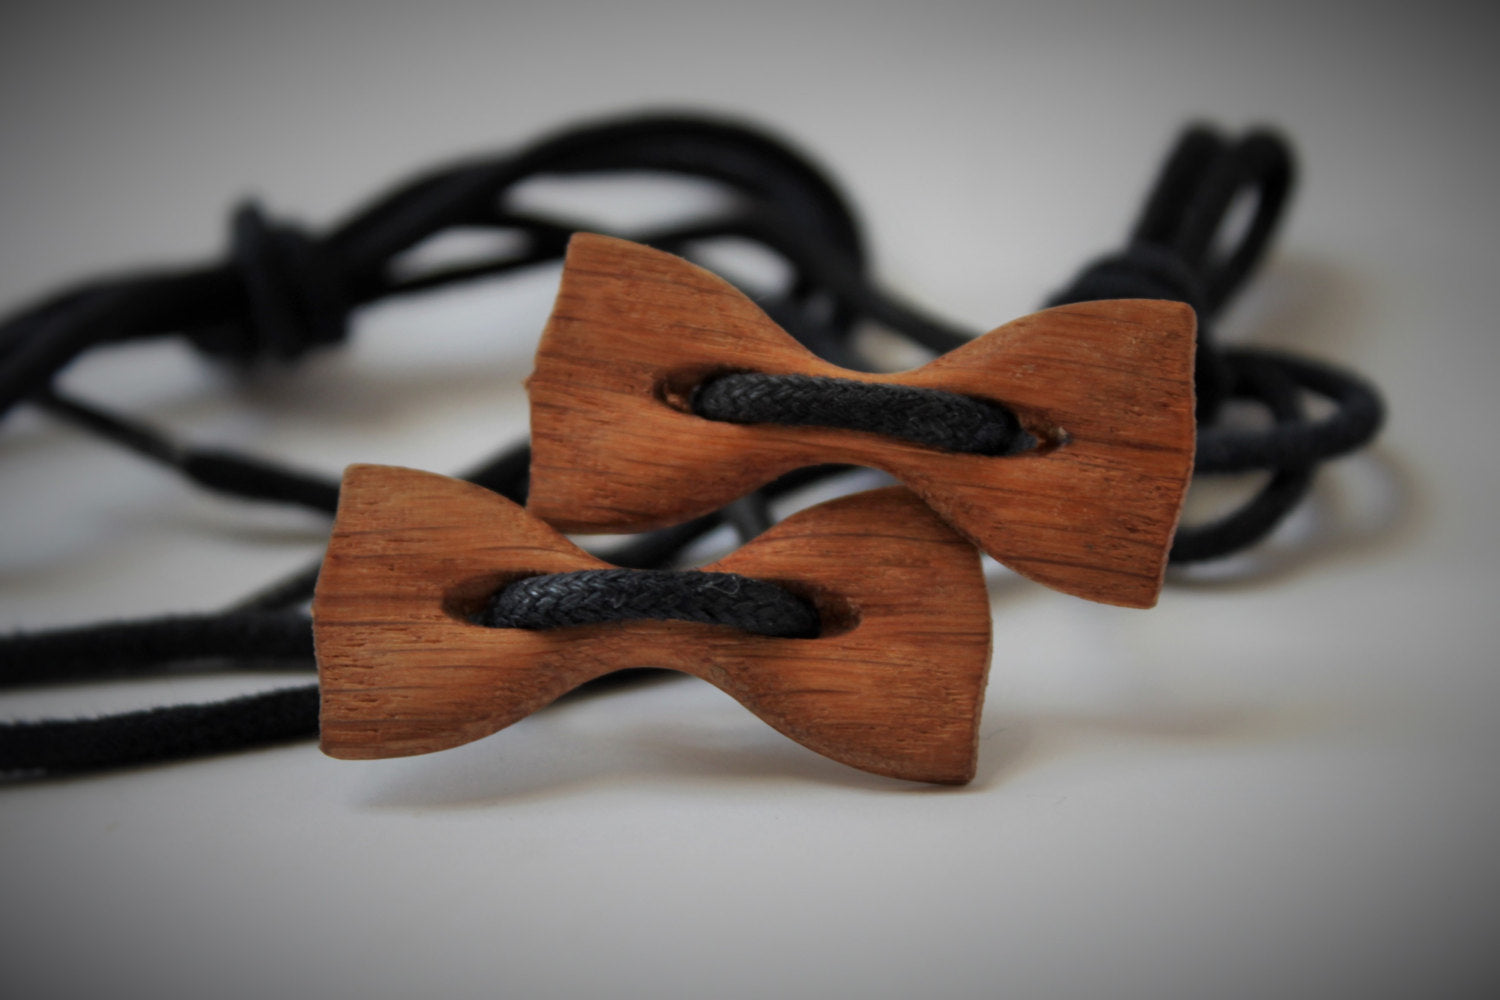 Set of two mens wooden bow tie shoes. wood shoes bow tie. handmade bowtie for shoes